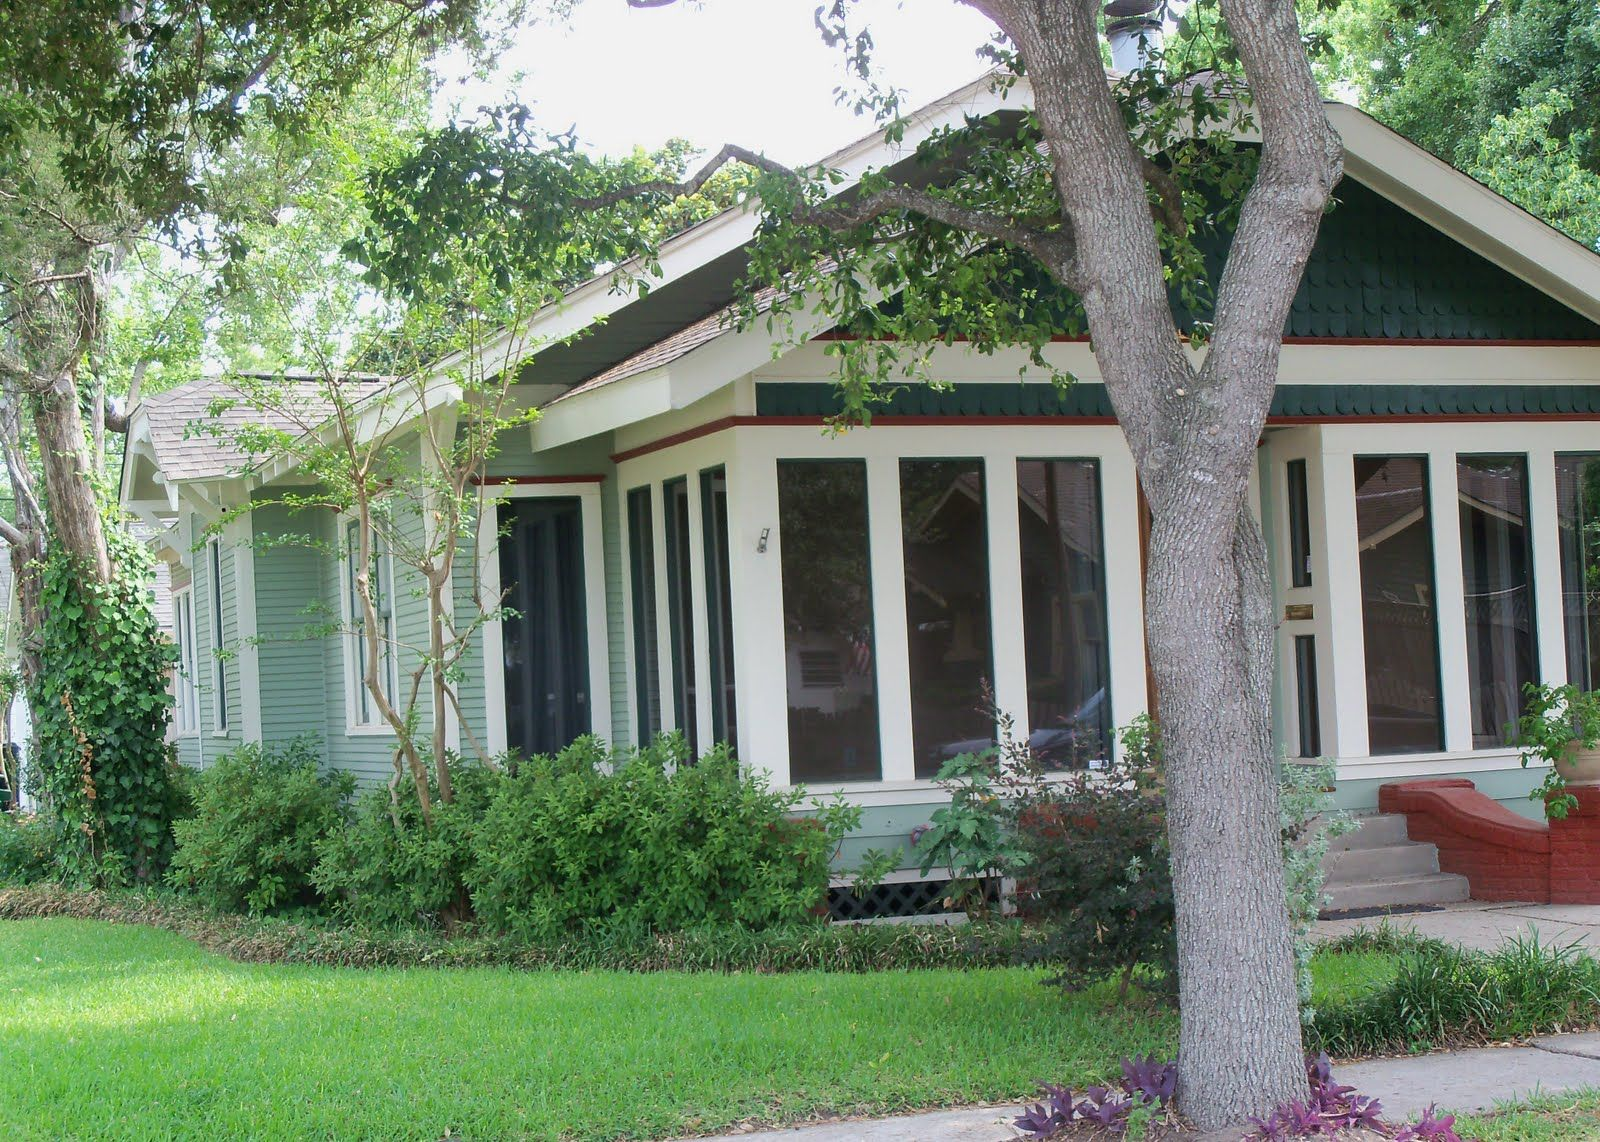 SUSAN'S COLORFUL LIFE: Pretty Green Houses